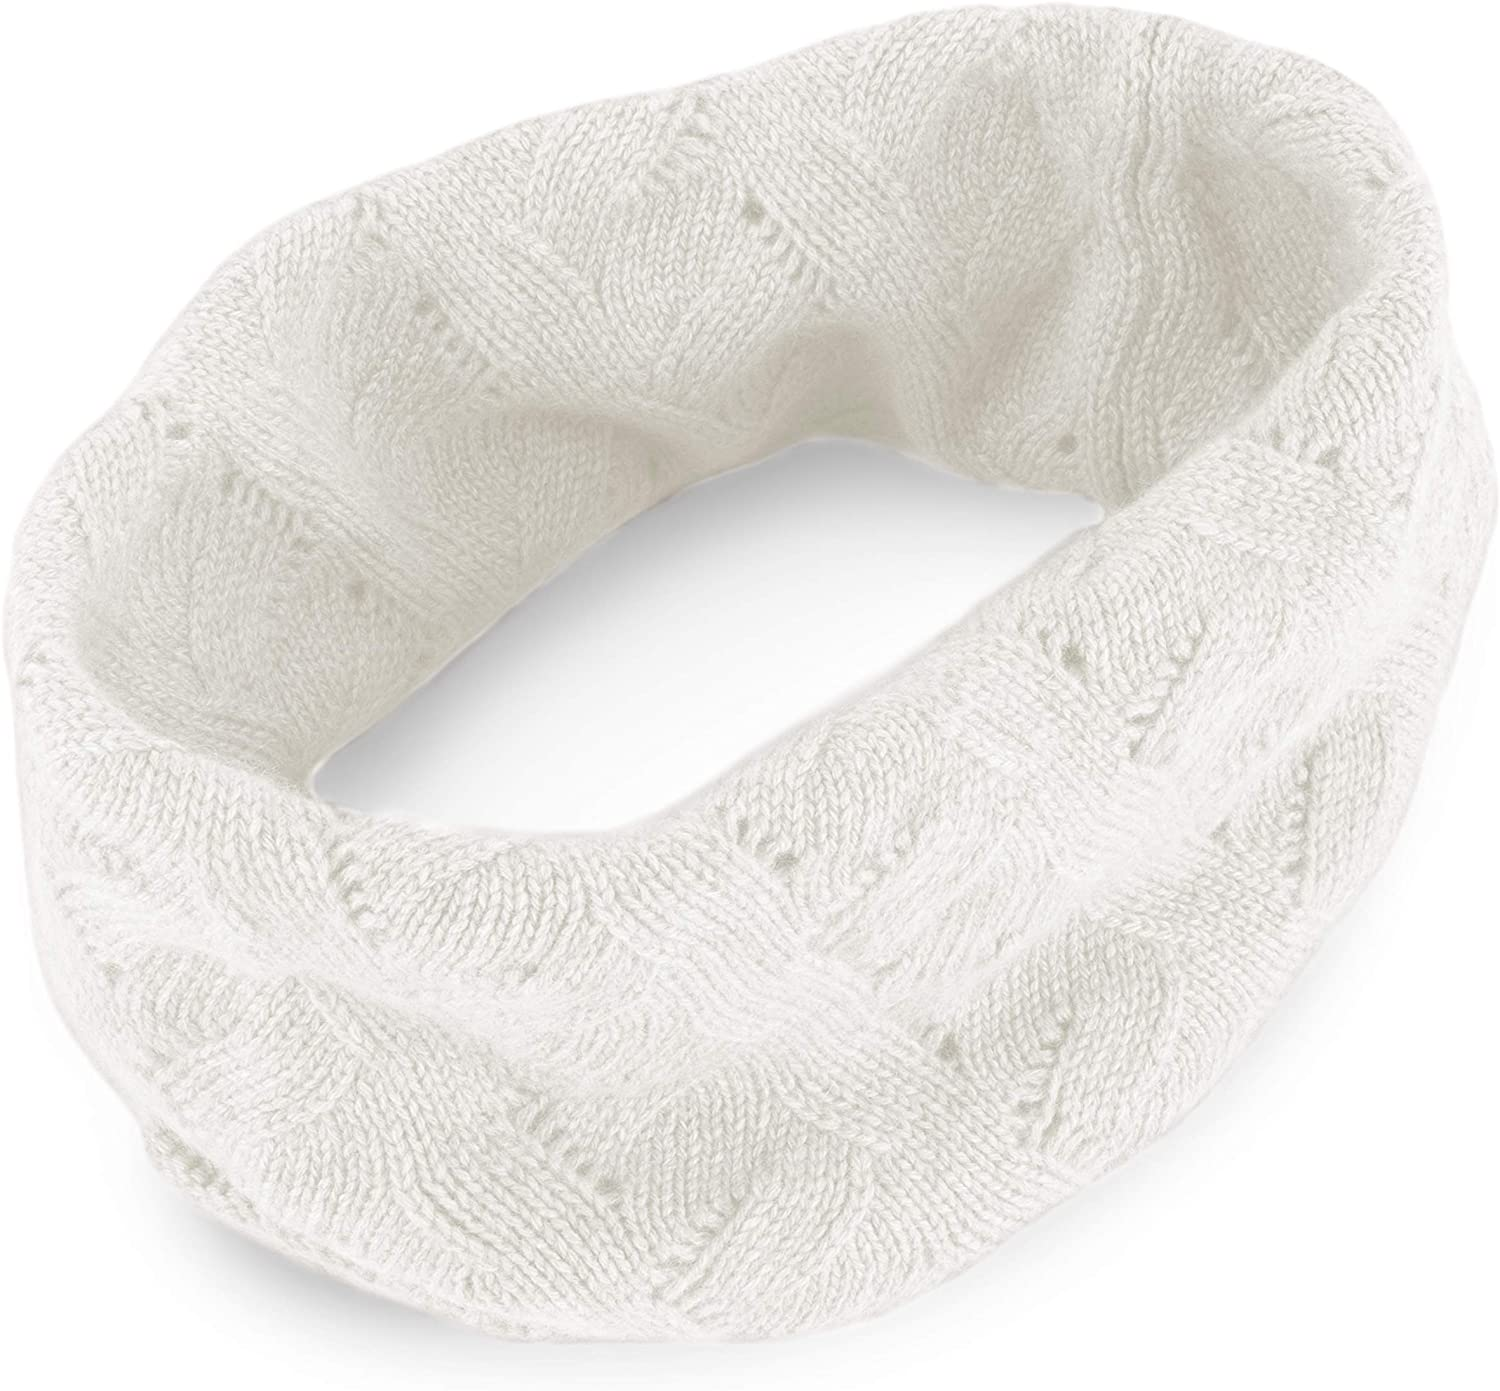 Love Cashmere Men's 100% Cashmere Infinity Scarf Snood - Ivory White - made in Scotland